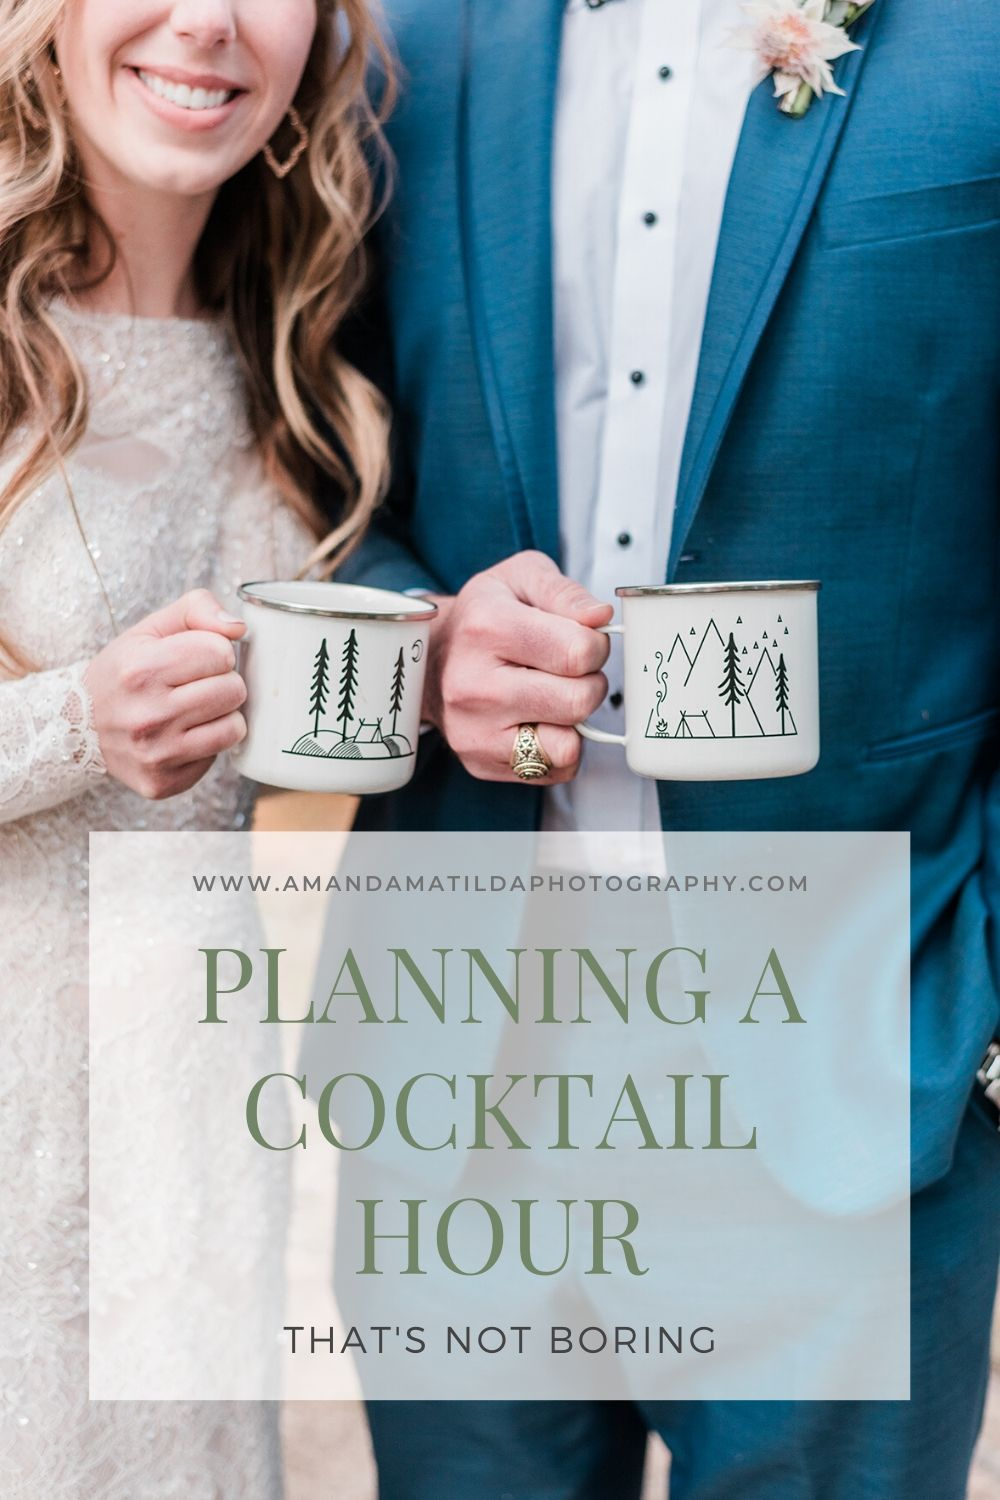 Planning a Cocktail Hour That's Not Boring | Amanda Matilda Photography